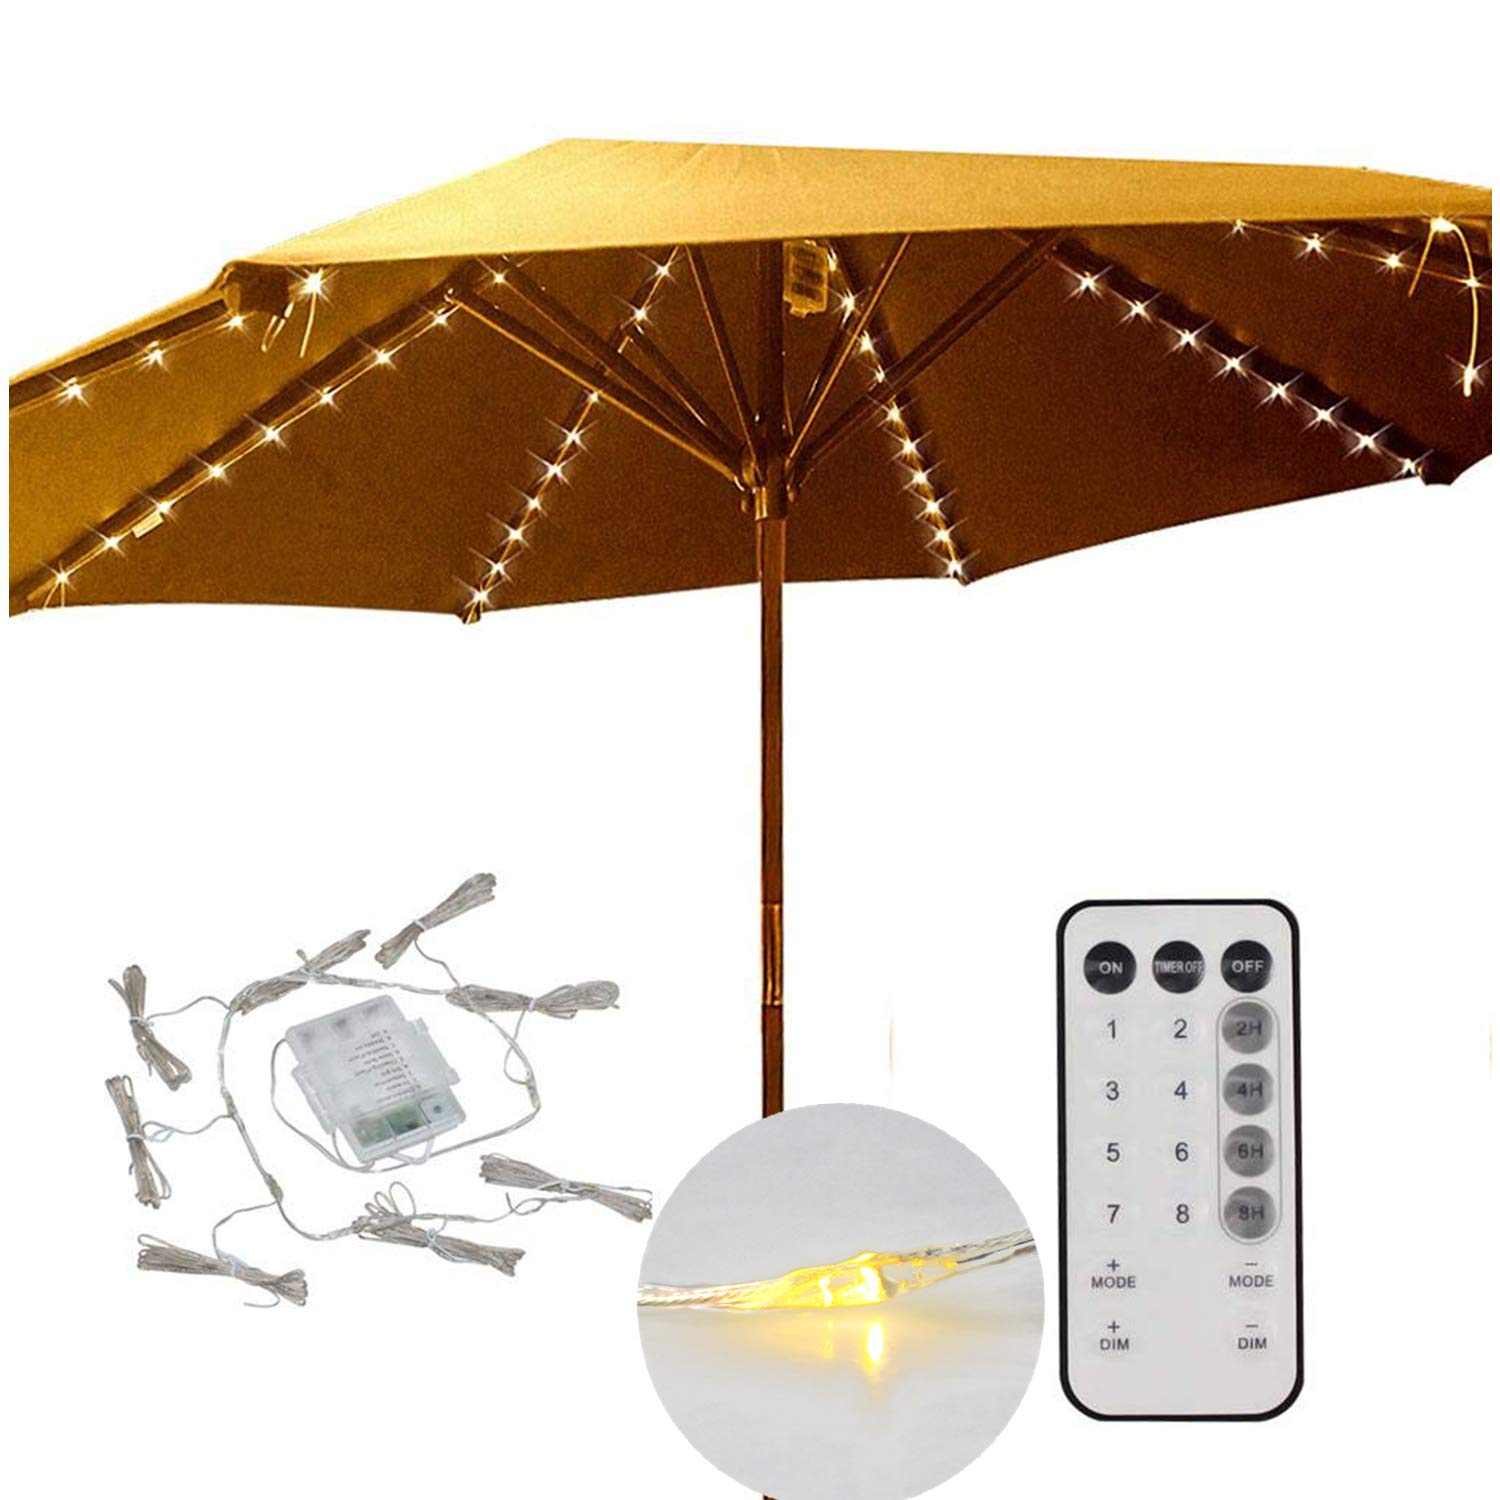 Decorative String Lights for Patio Cantilever Umbrella,8-Ribs 104 LED,Battery Powered,Remote Control,Timer,Dimmable,8 Mode,Easy to Install,Hanging Umbrellas Lights - Warm White